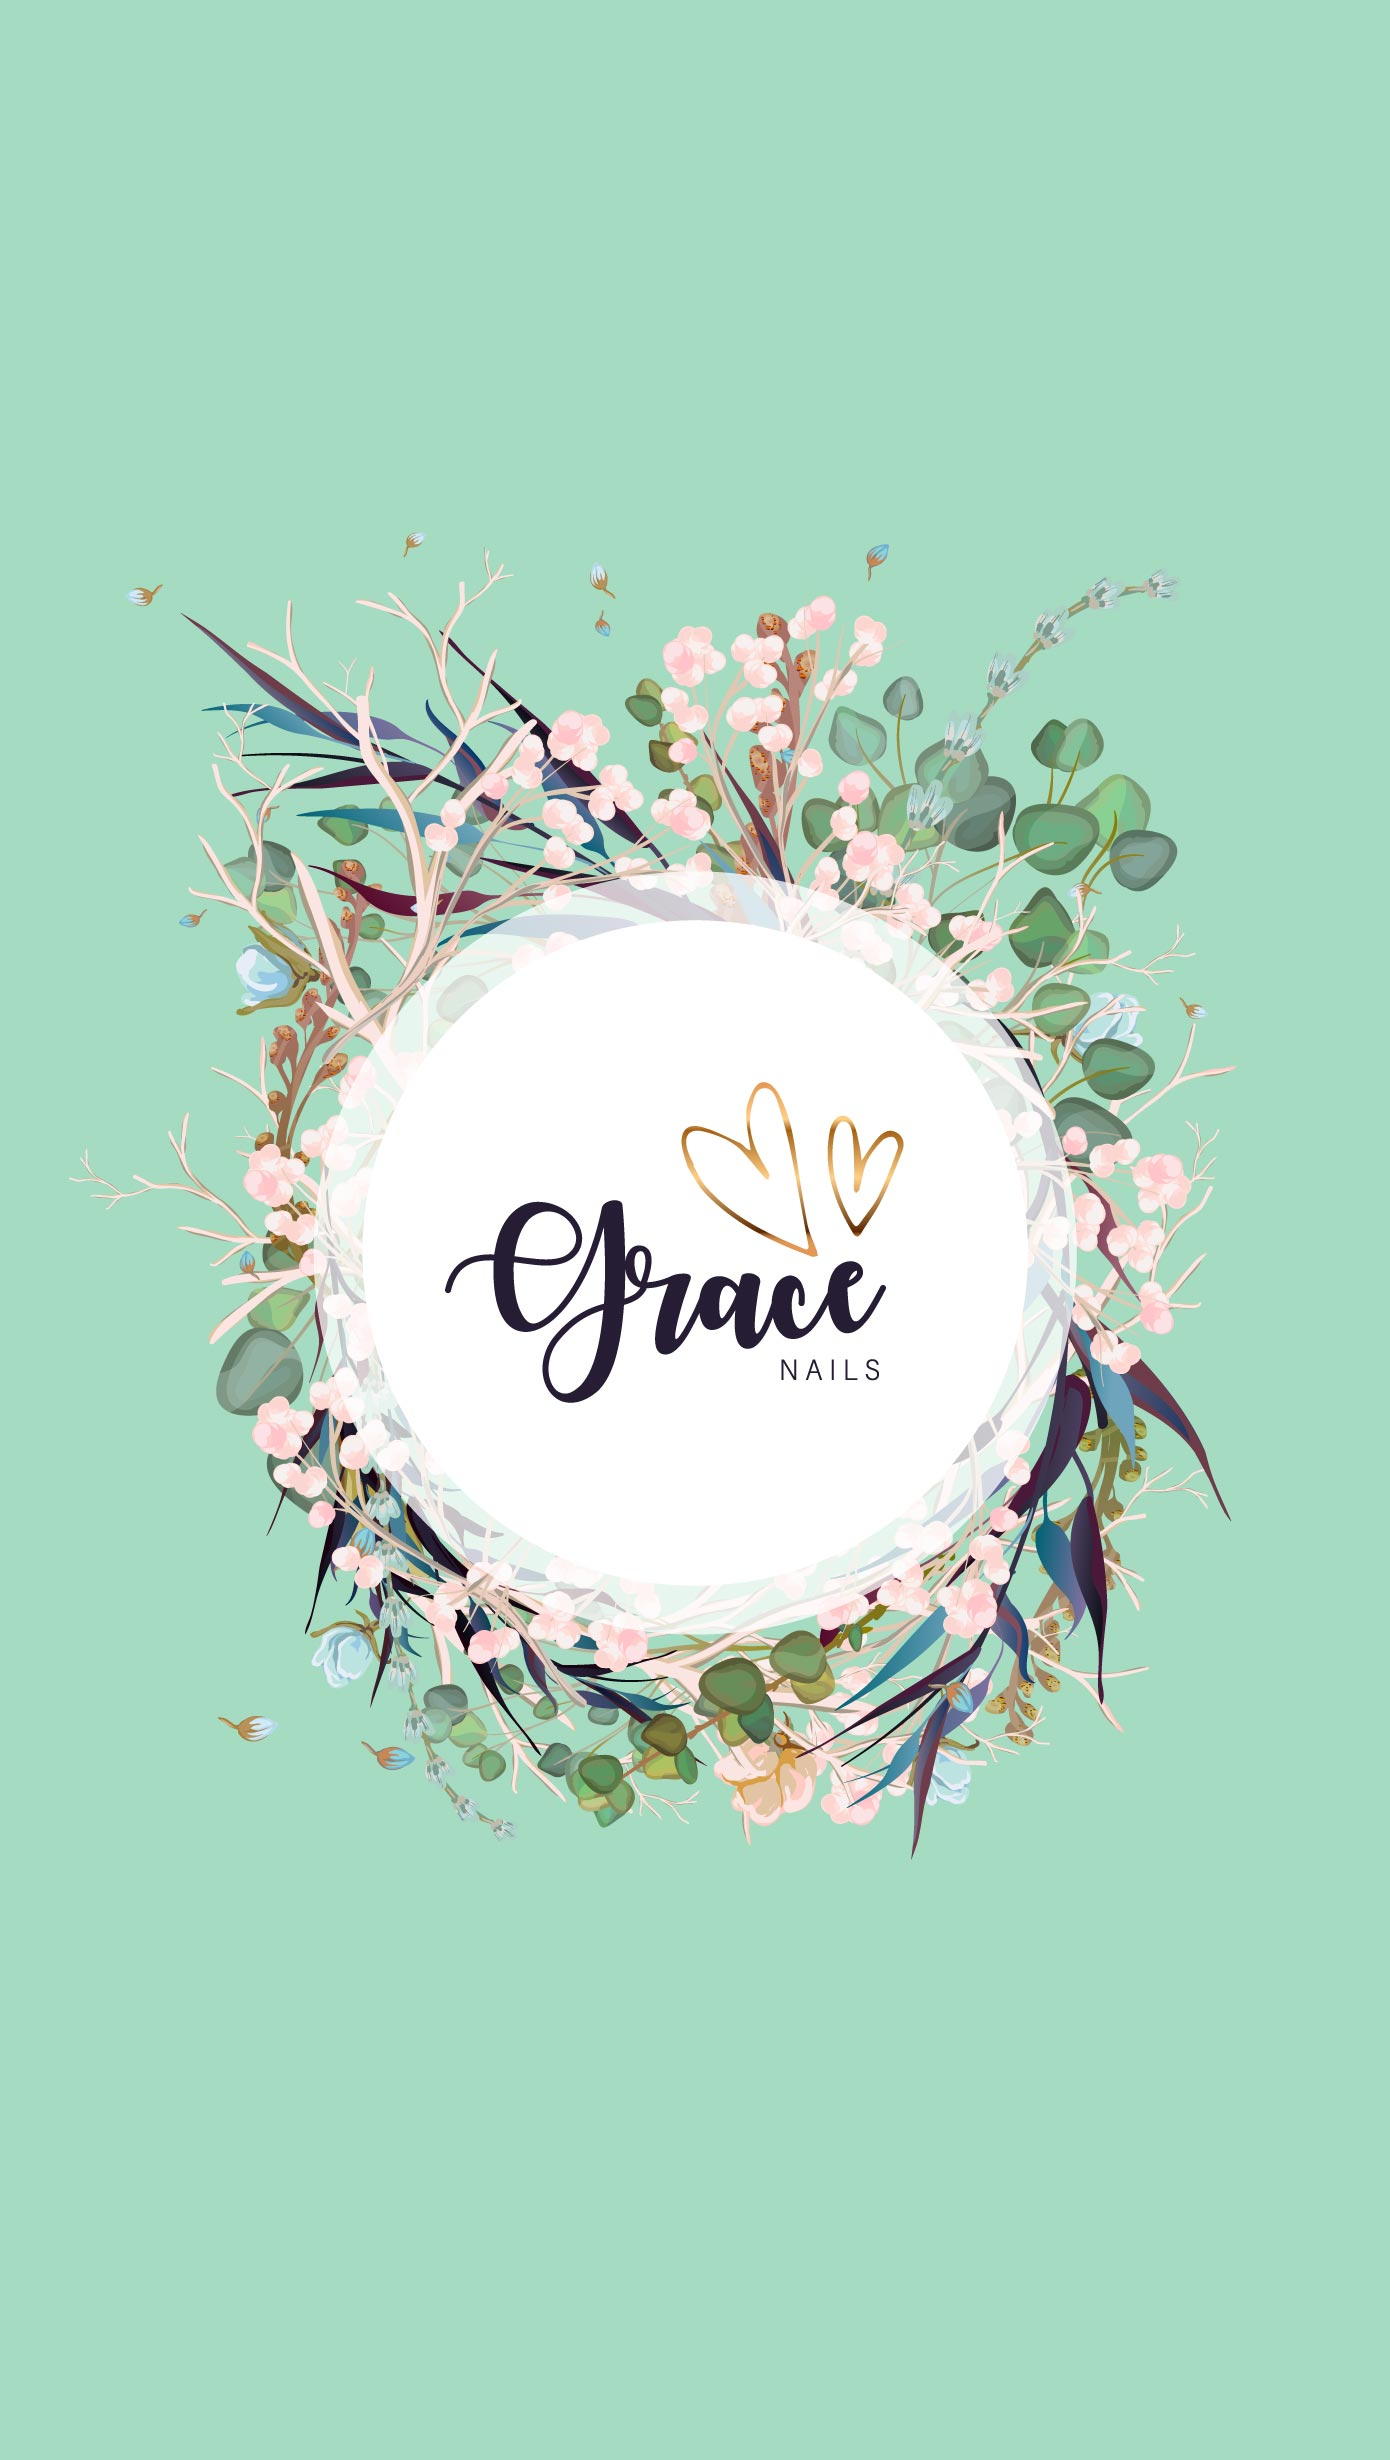 Grace Nails Logo Design